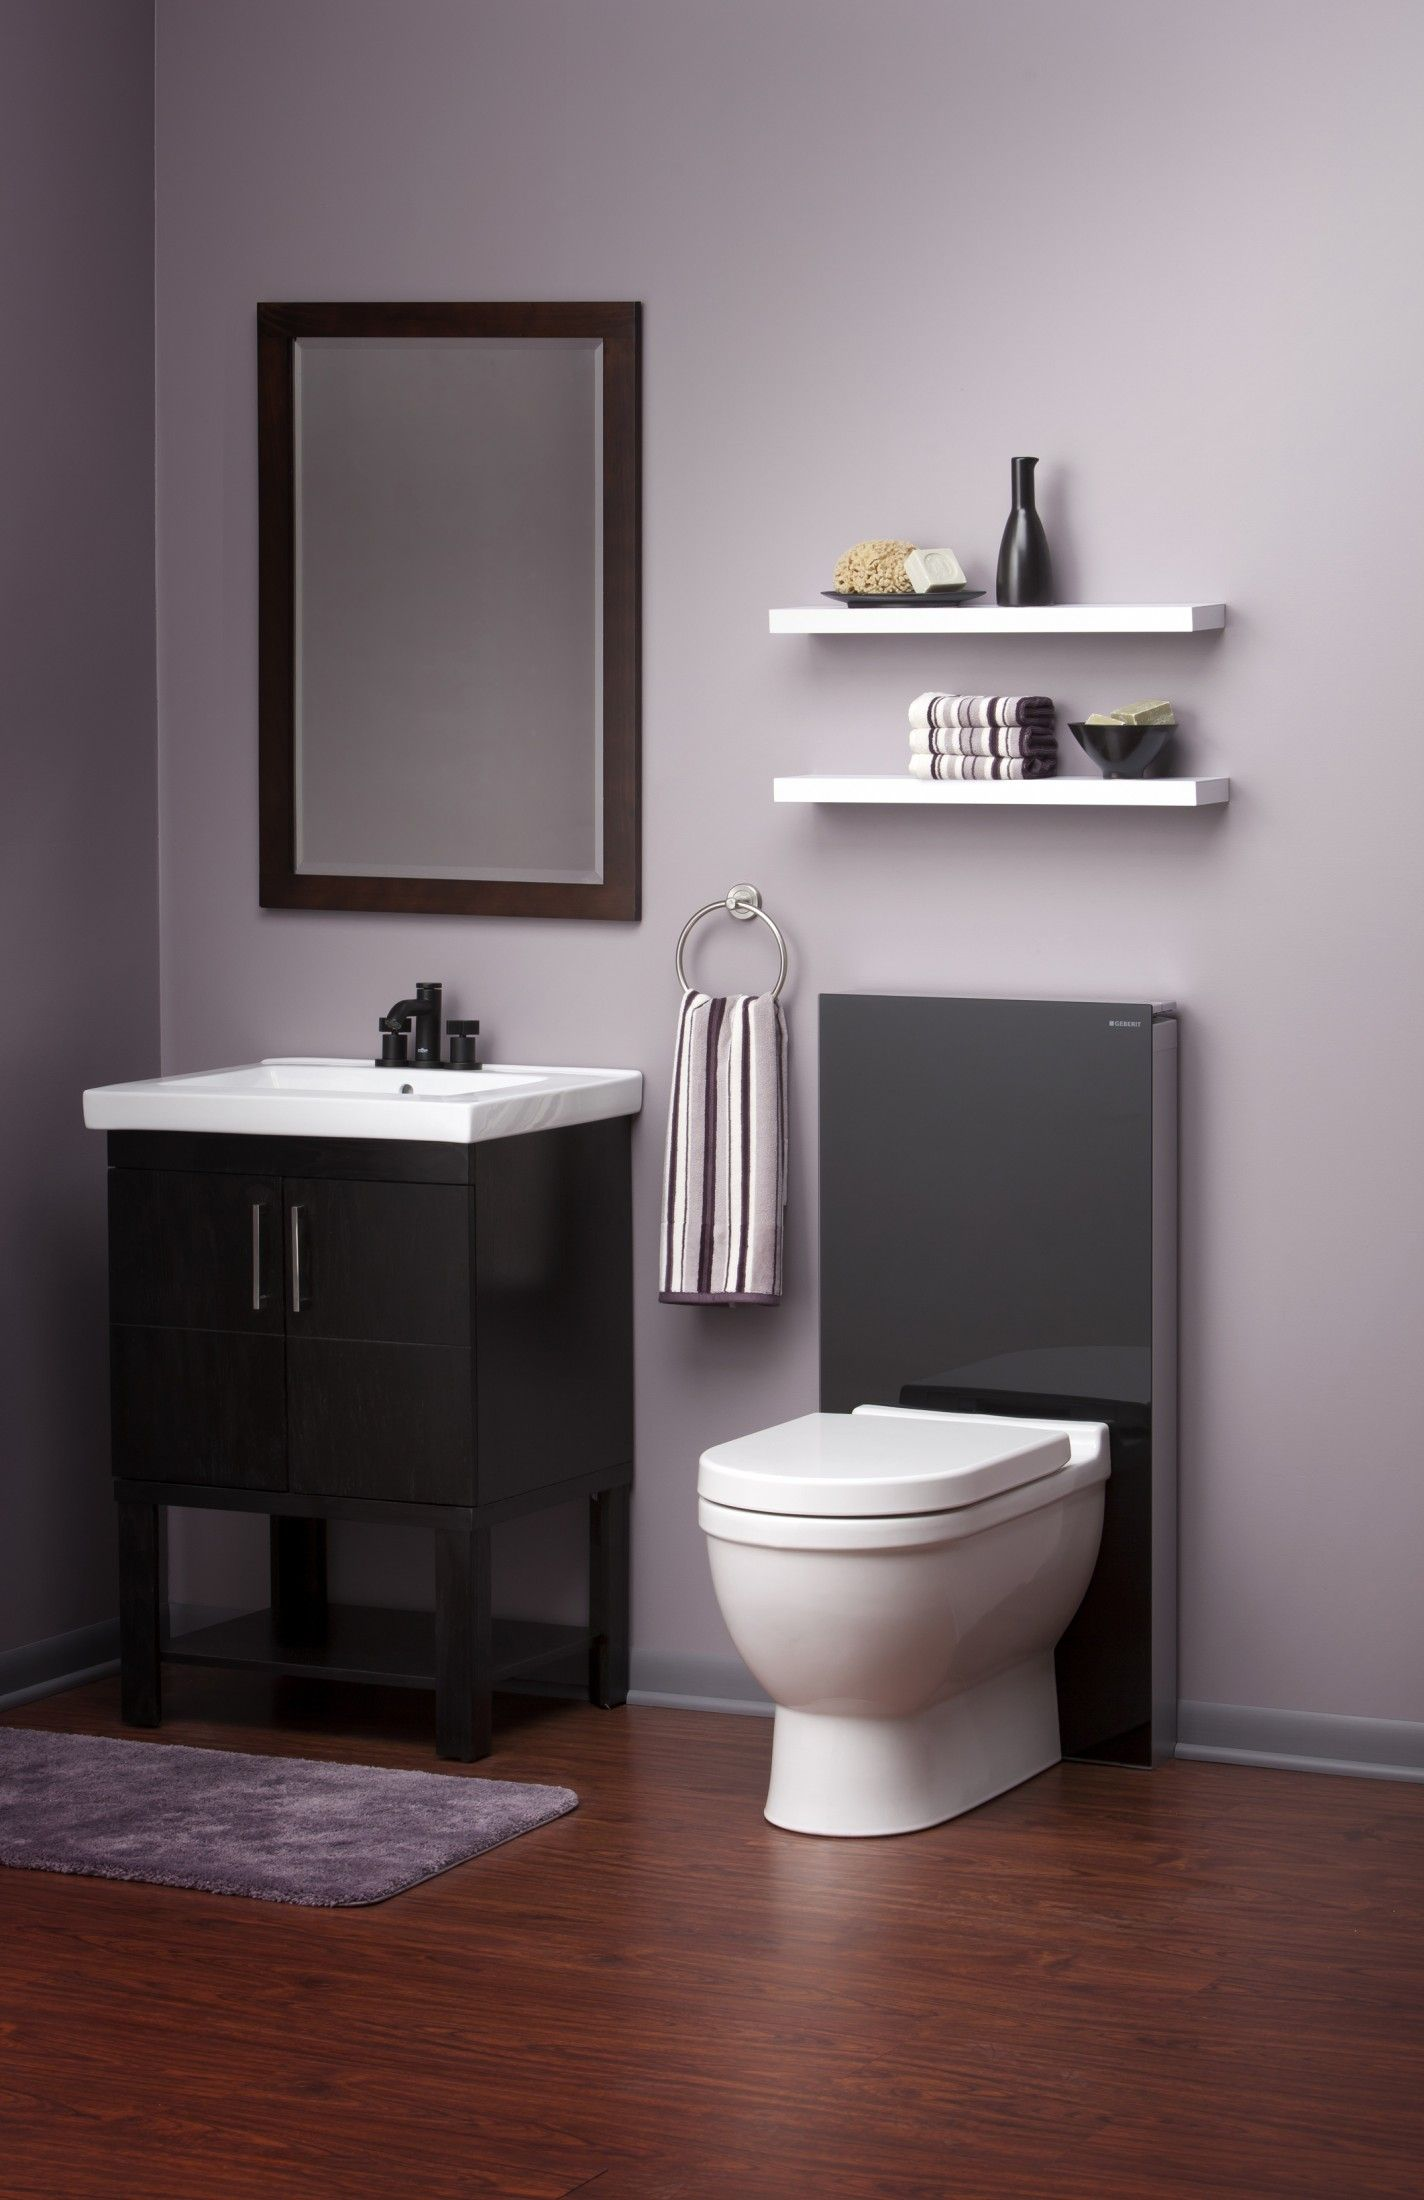 This Sleek Geberit Toilet System Gives This Bathroom Just